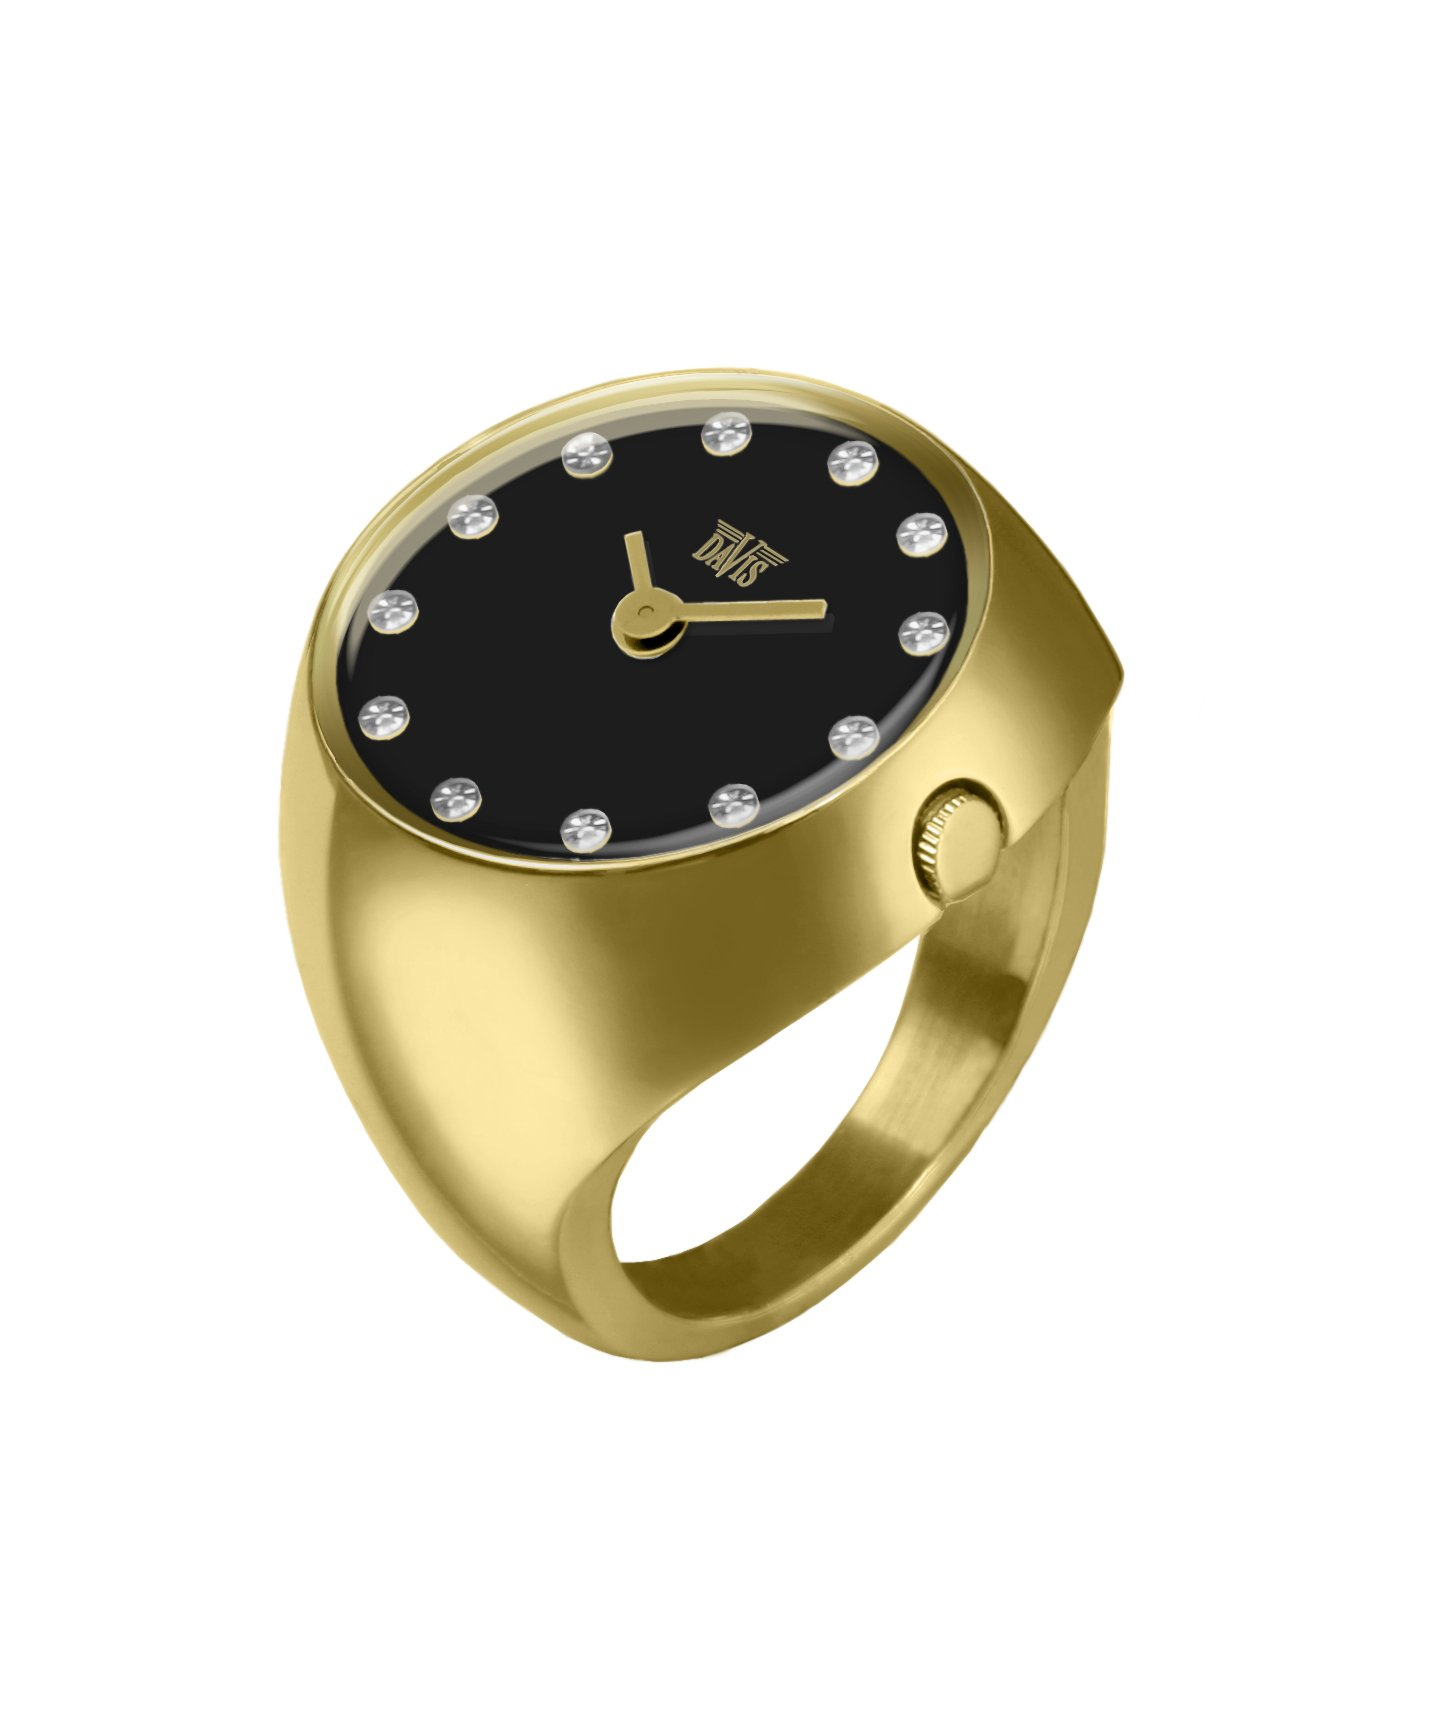 Davis 2015S - Womens Finger Ring Watch Yellow Gold Domed Sapphire Glass Black Dial with Swarovski Crystal Markers Size 52 by Davis